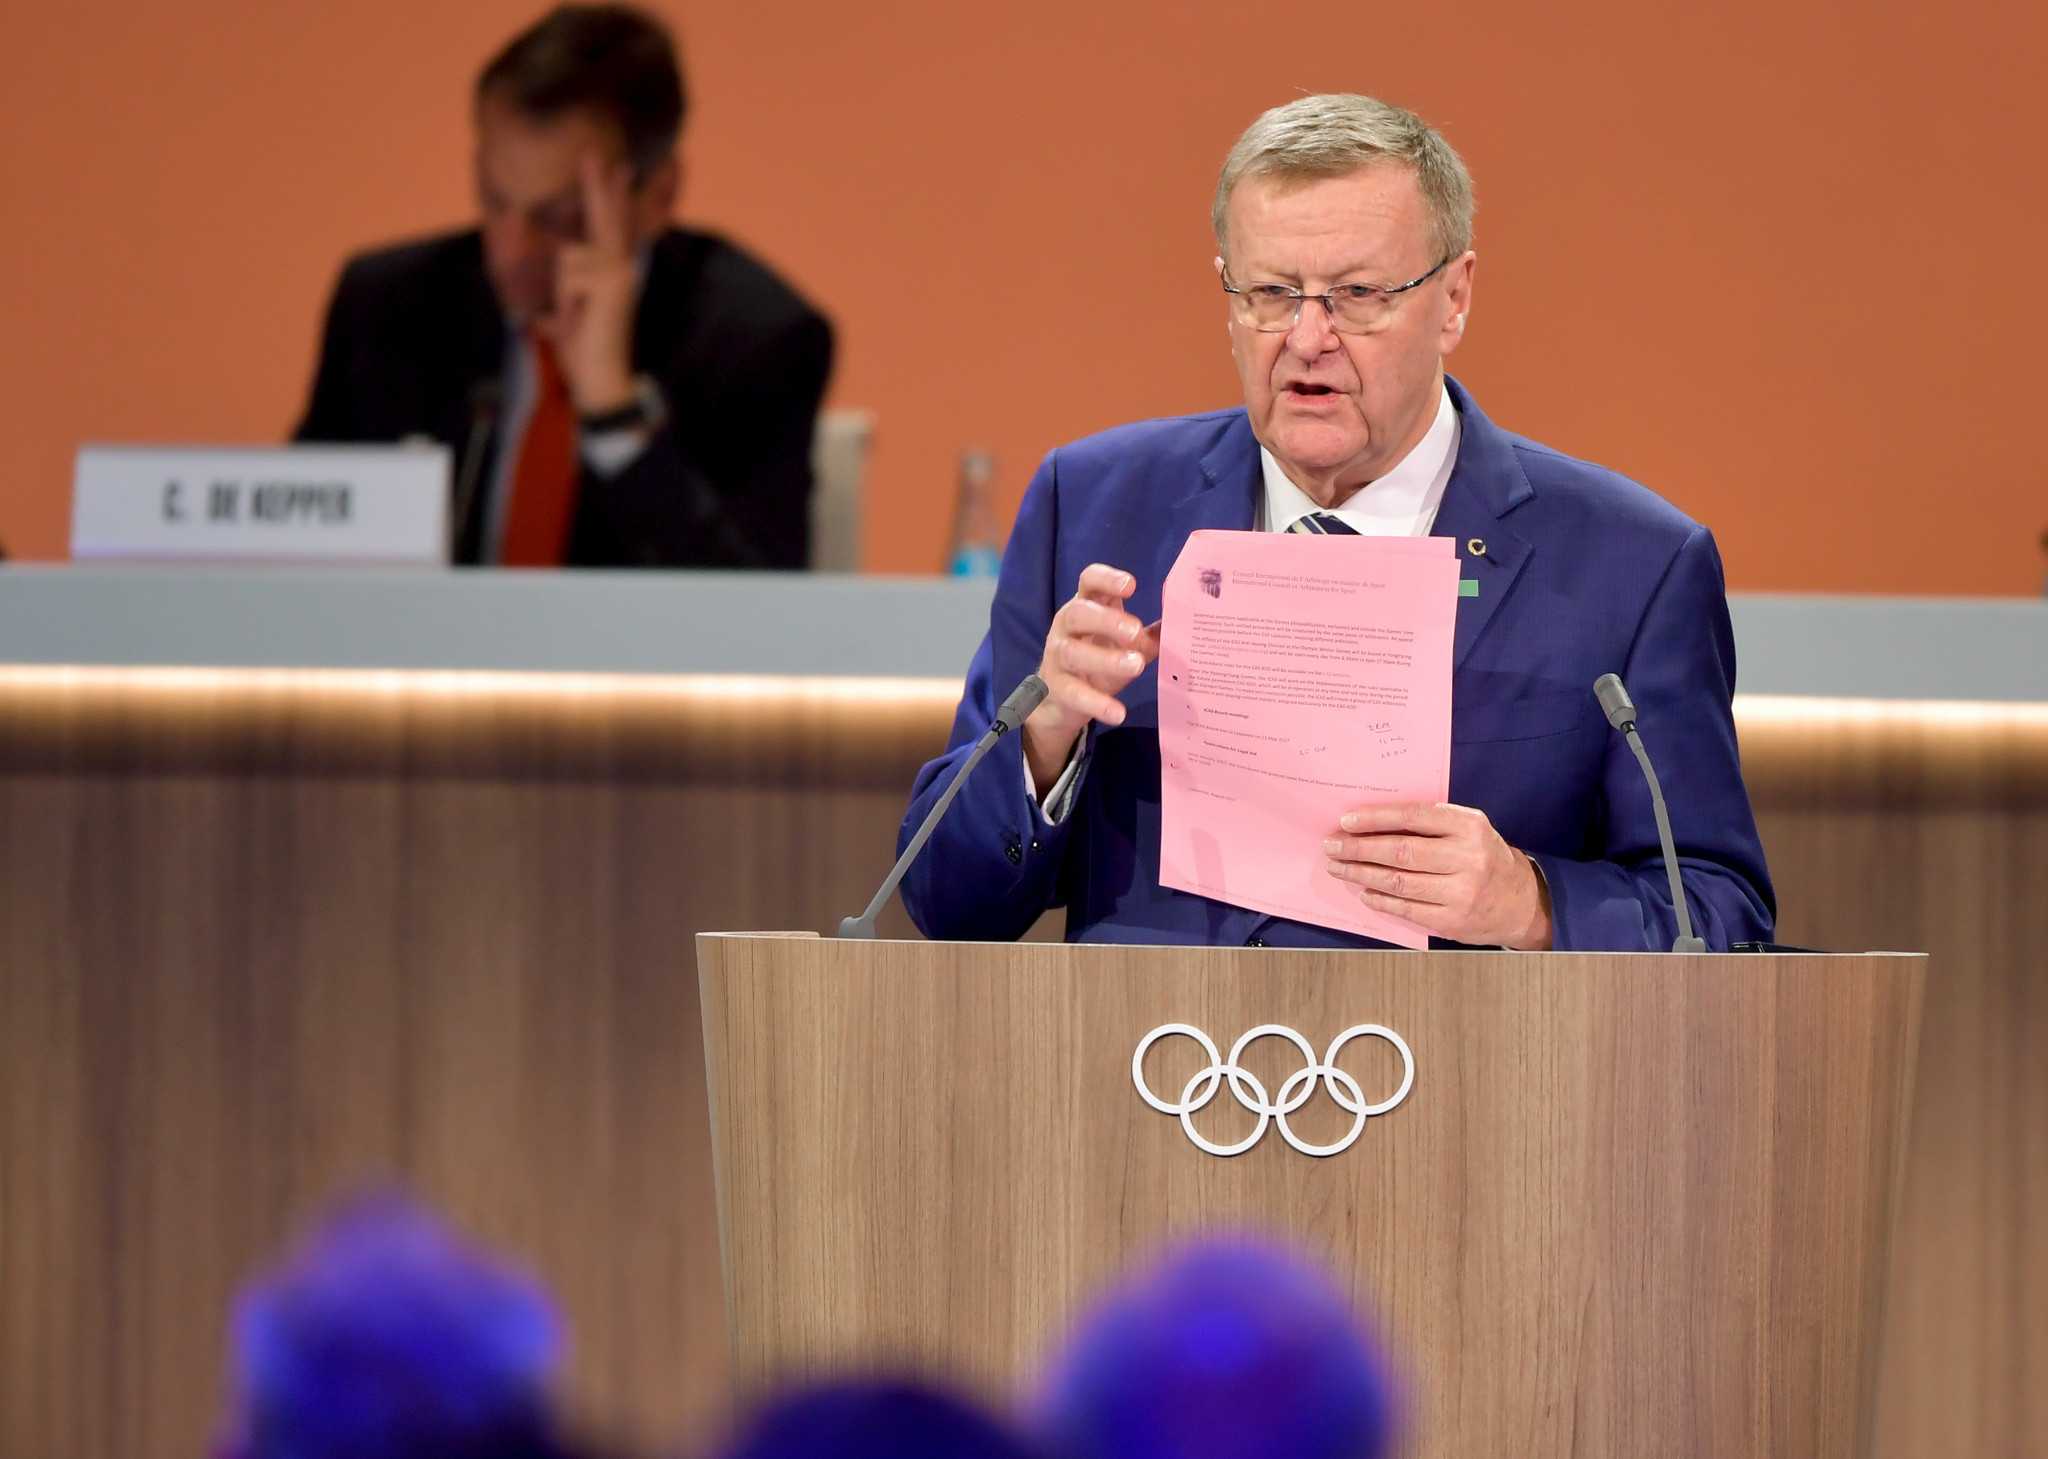 IOC member John Coates presented the changes today ©Getty Images